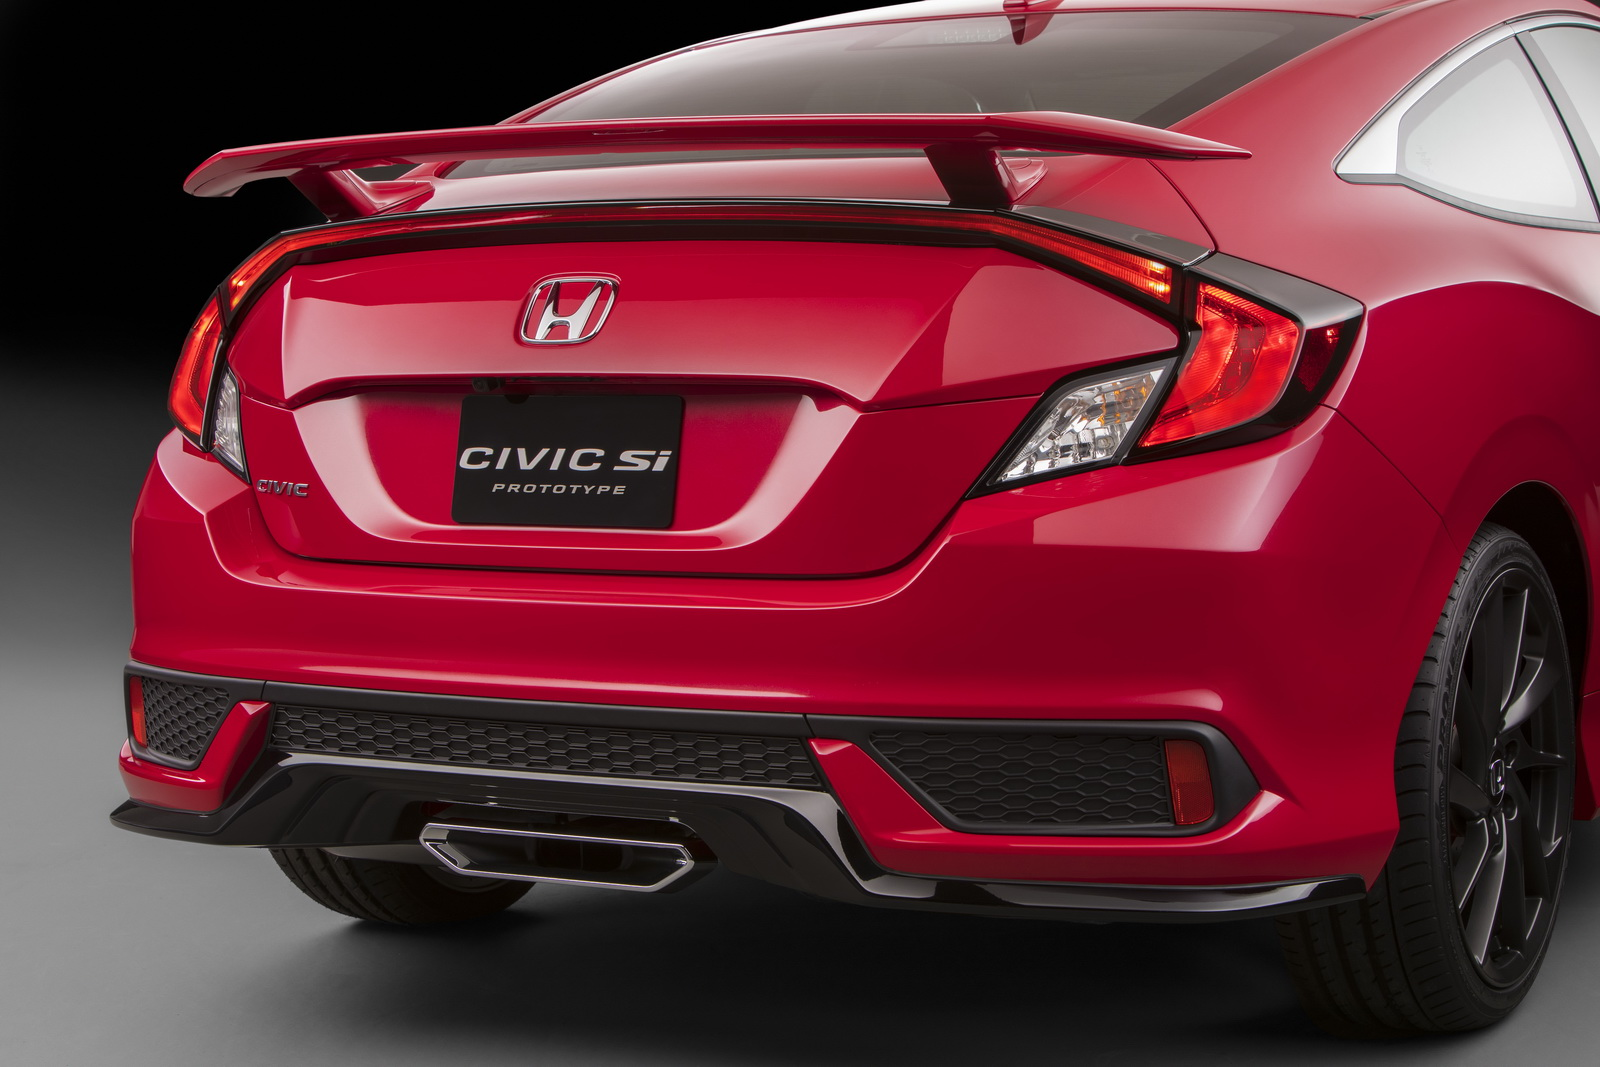 watch honda 39 s reveal of the 2018 civic si coupe and sedan at 11am est carscoops. Black Bedroom Furniture Sets. Home Design Ideas